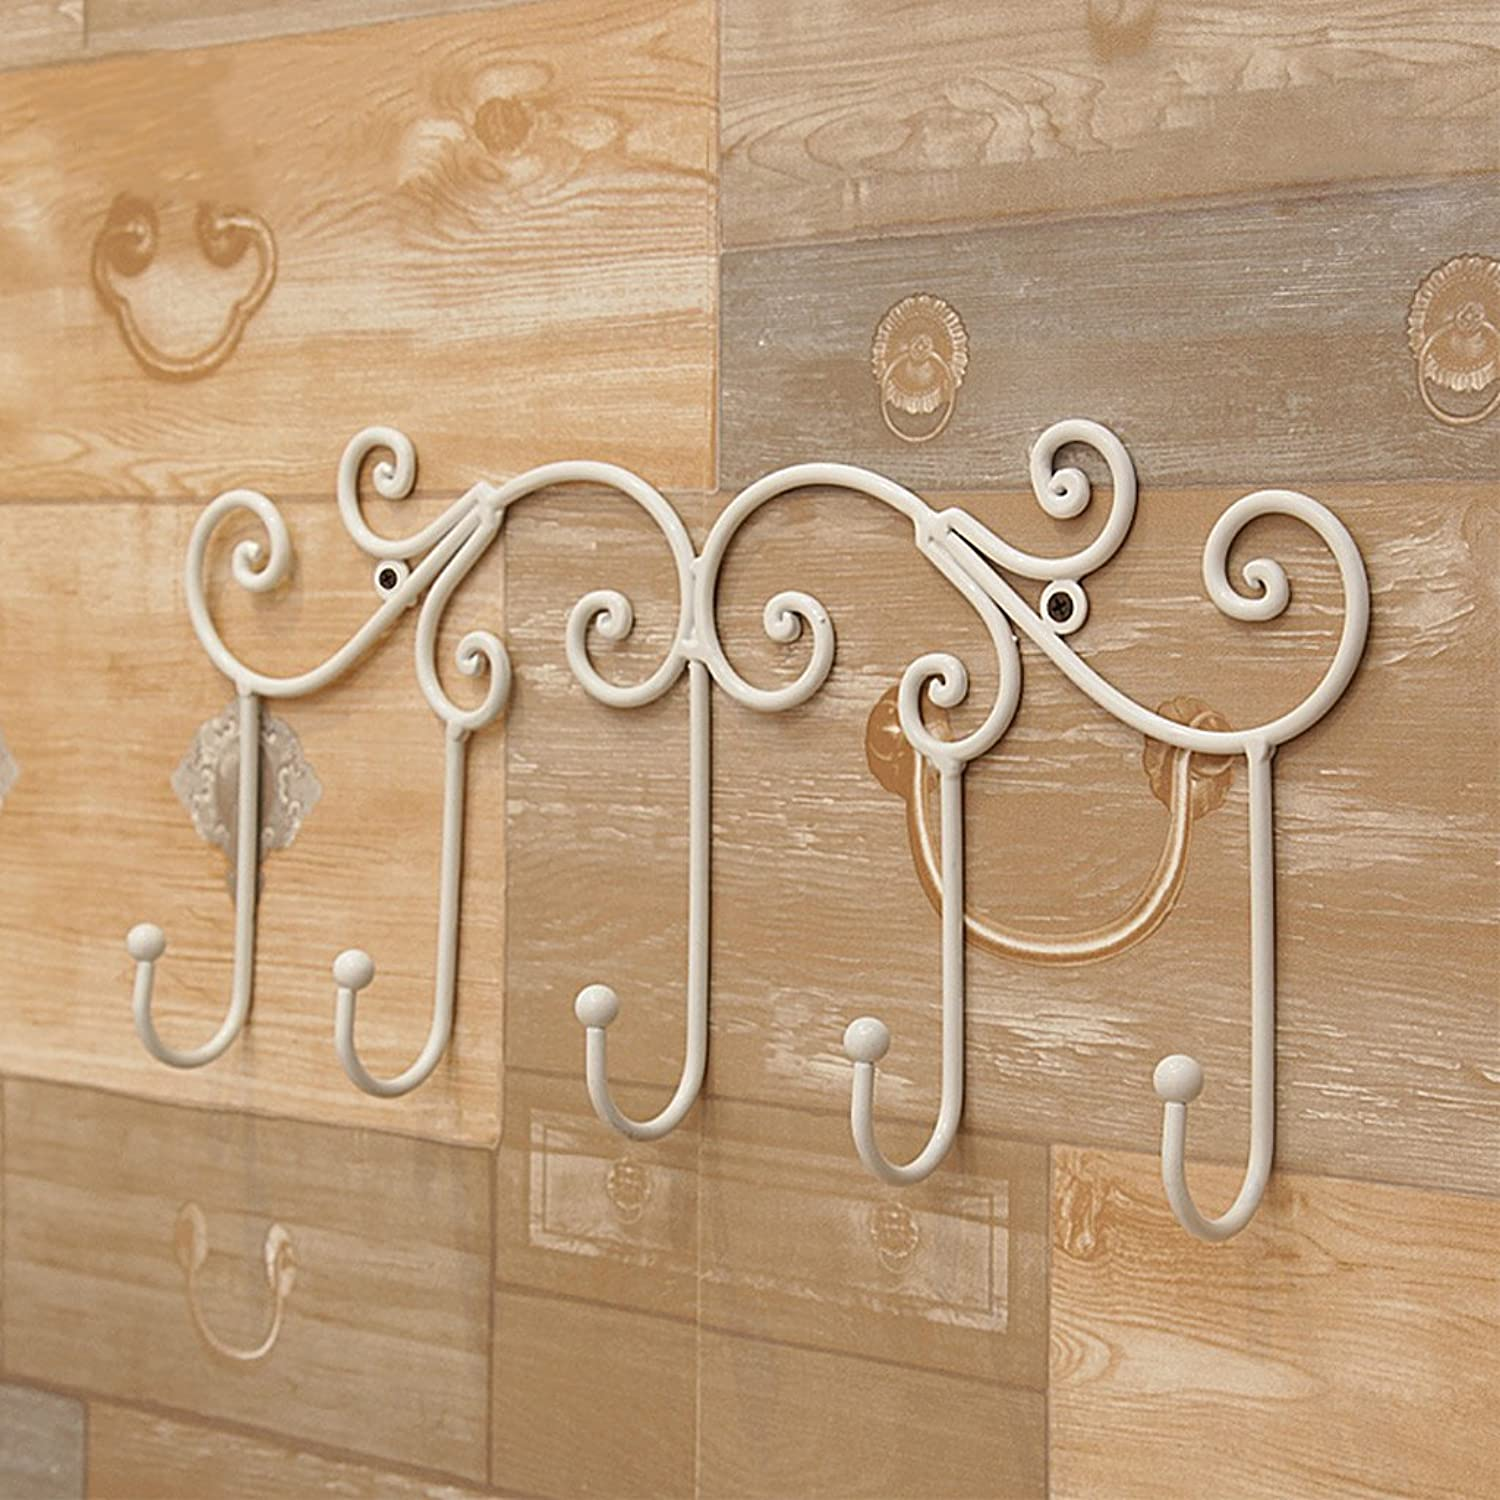 DQMSB Hanging Hook - Five Hook Wall Hook, Wall Mount, Wrought Iron Display Stand Size  45 cm X 6 cm Coat Racks (color   White)